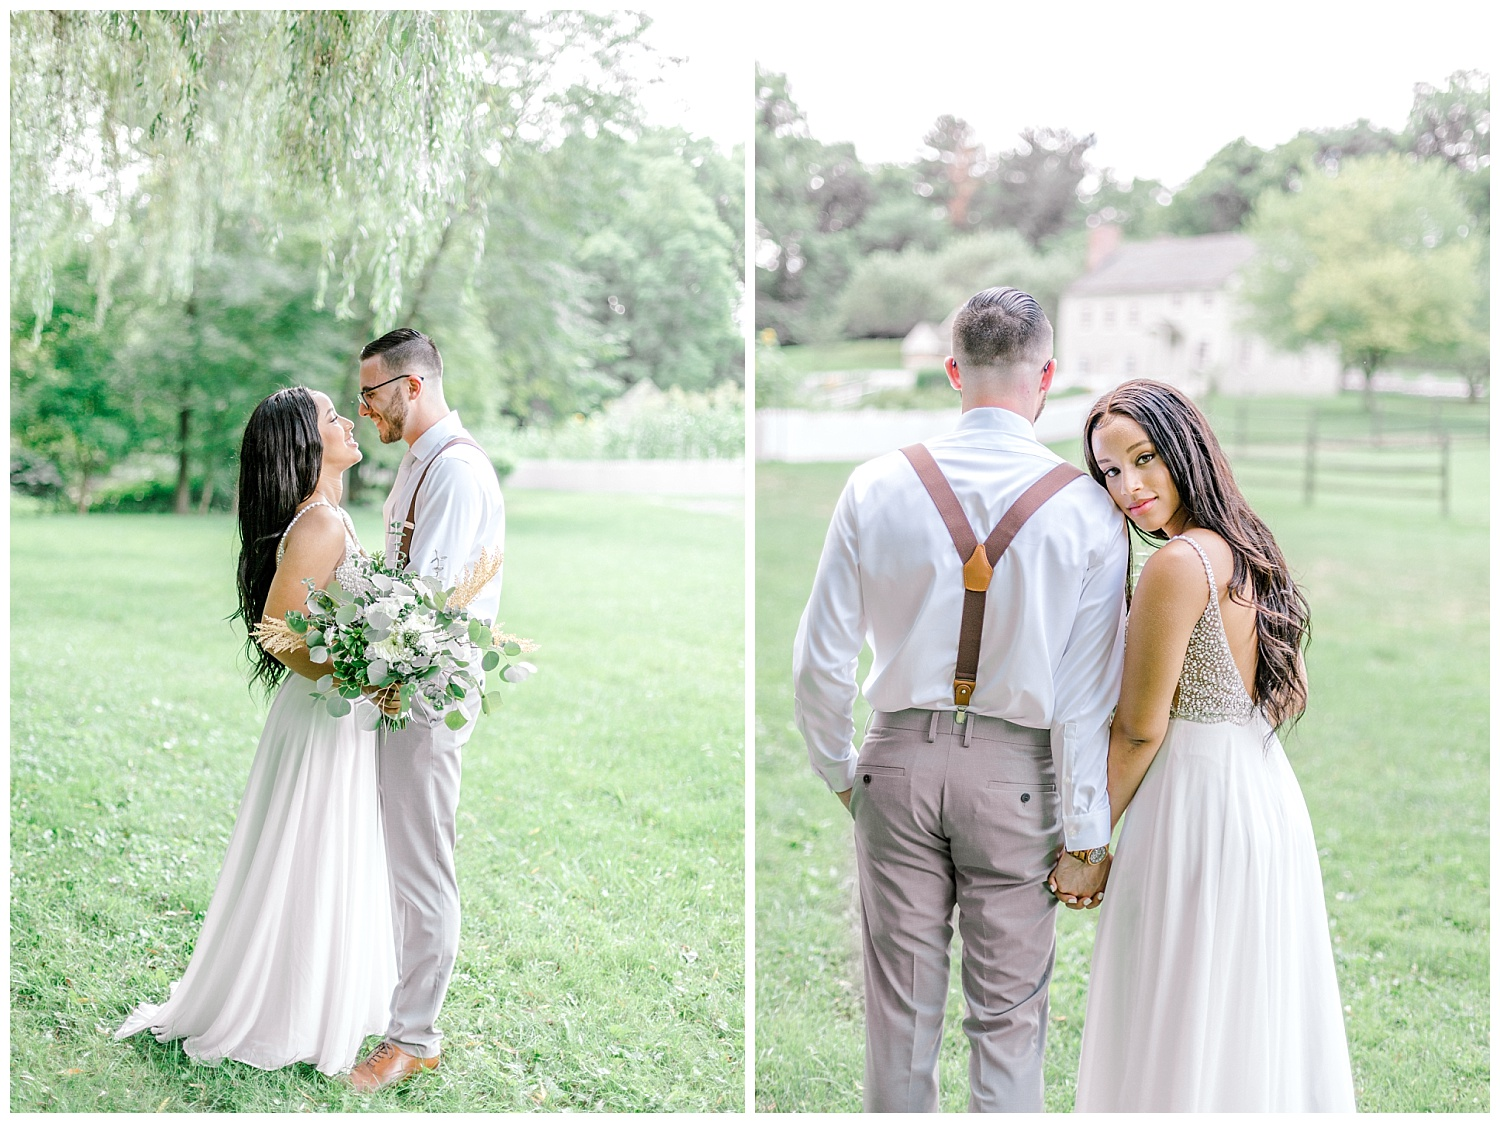 Olive green and white rustic barn wedding at burnside plantation in bethlehem pennsylvania by PA based destination wedding and lifestyle photographer Lytle photography (20).jpg